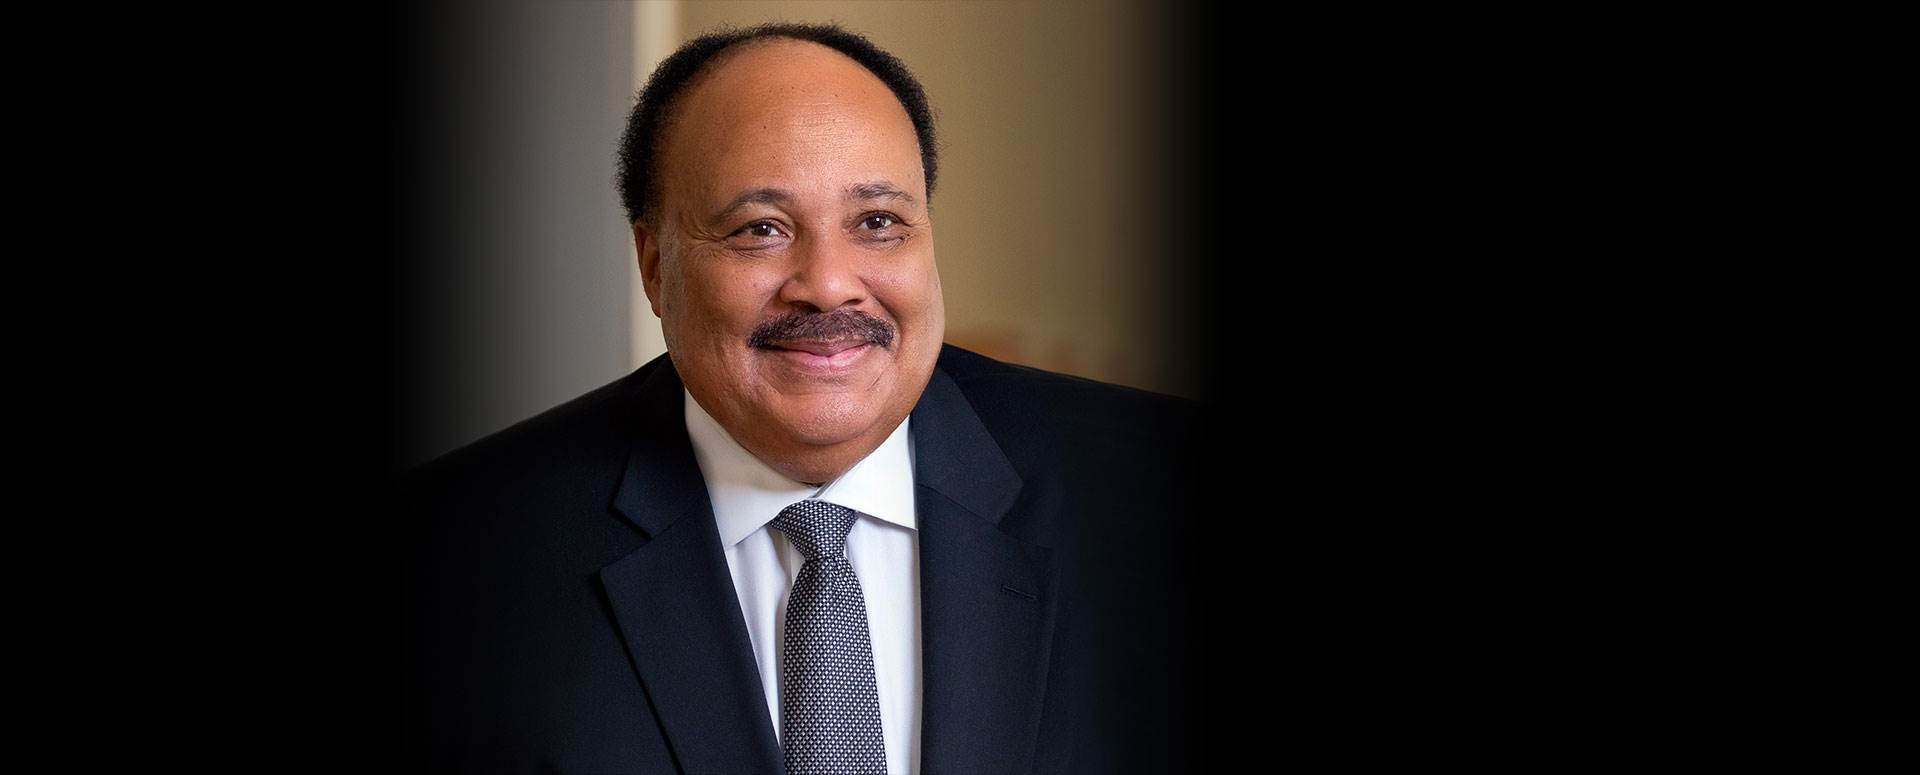 Book Martin Luther King Iii For Speaking Events And Appearances Apb Speakers